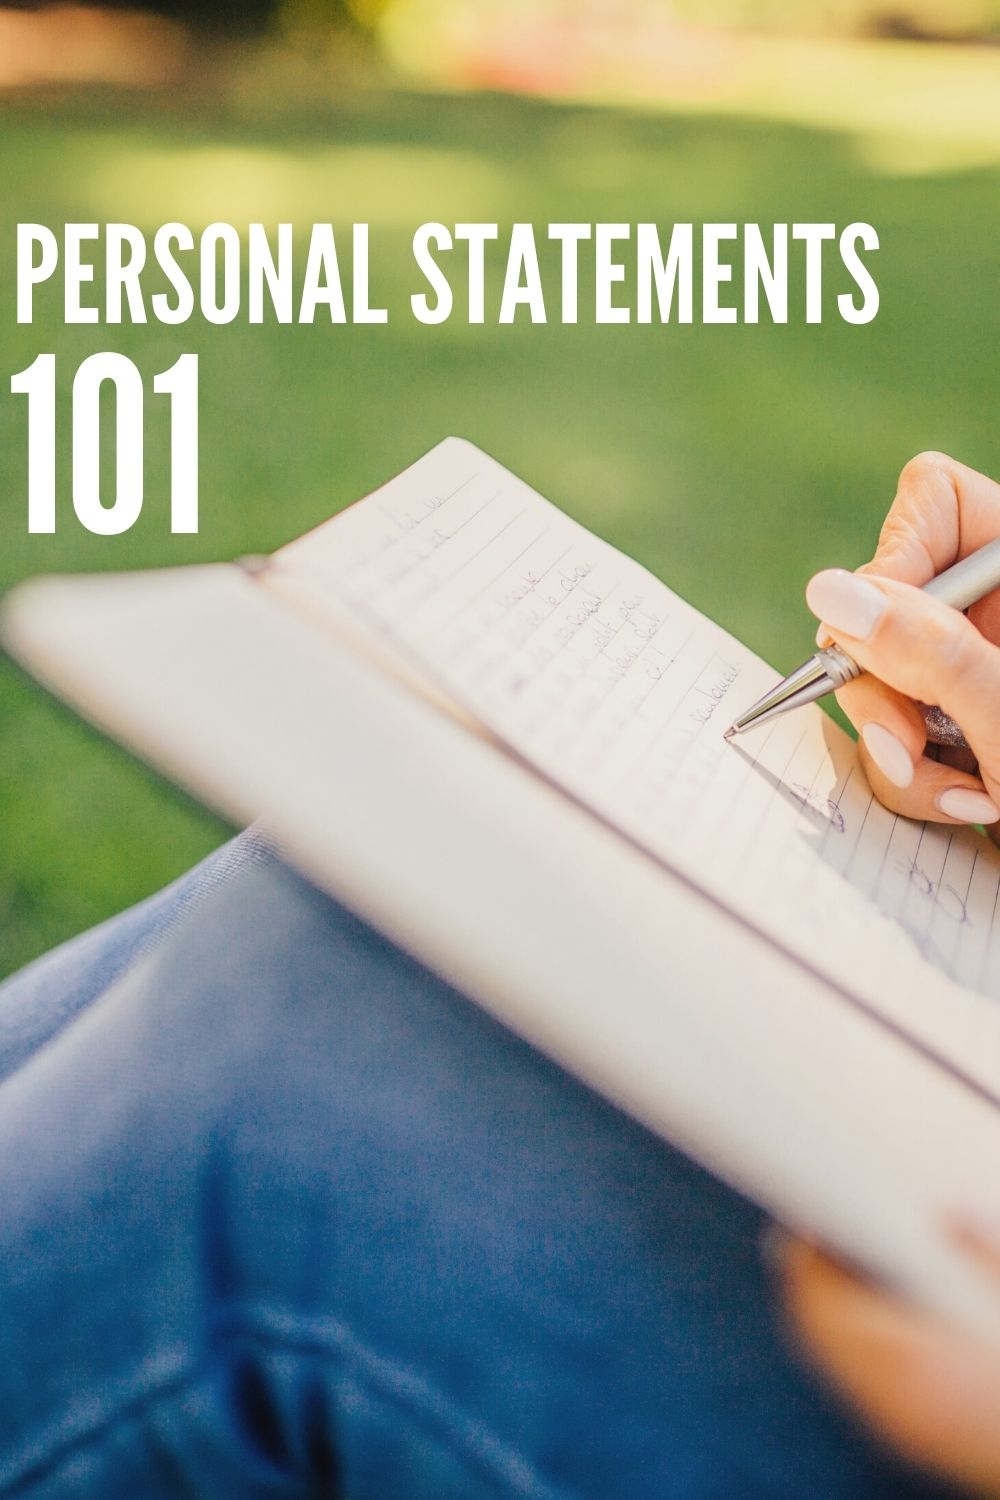 Personal Statements 101